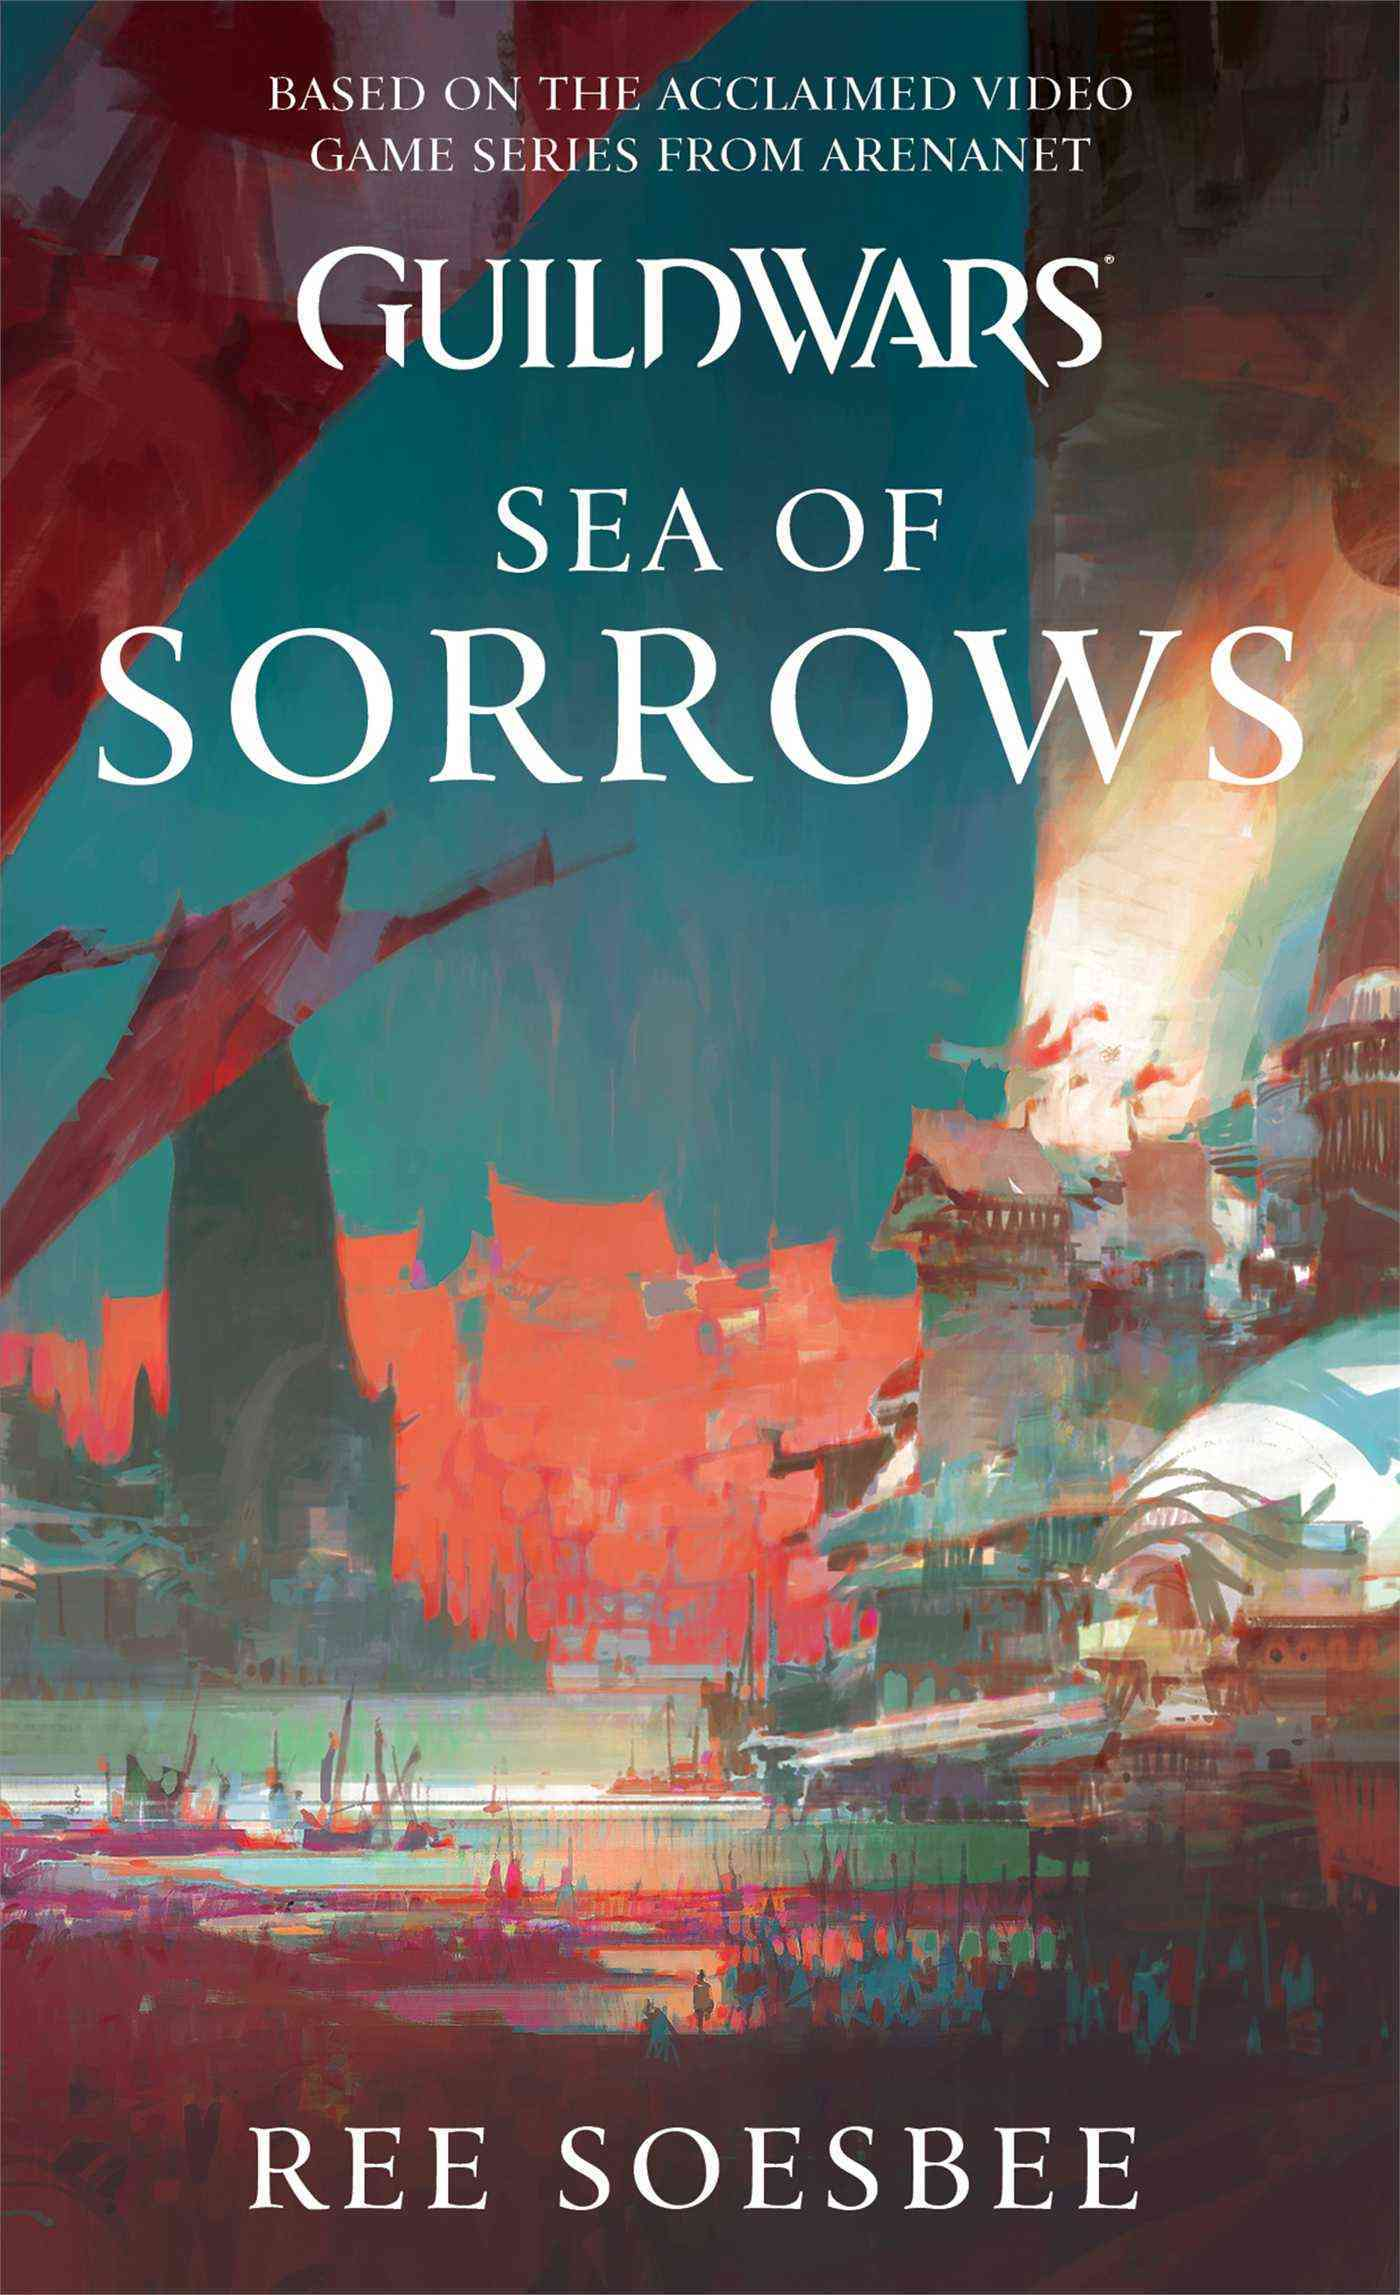 Sea of Sorrows (Paperback) - Thumbnail 0